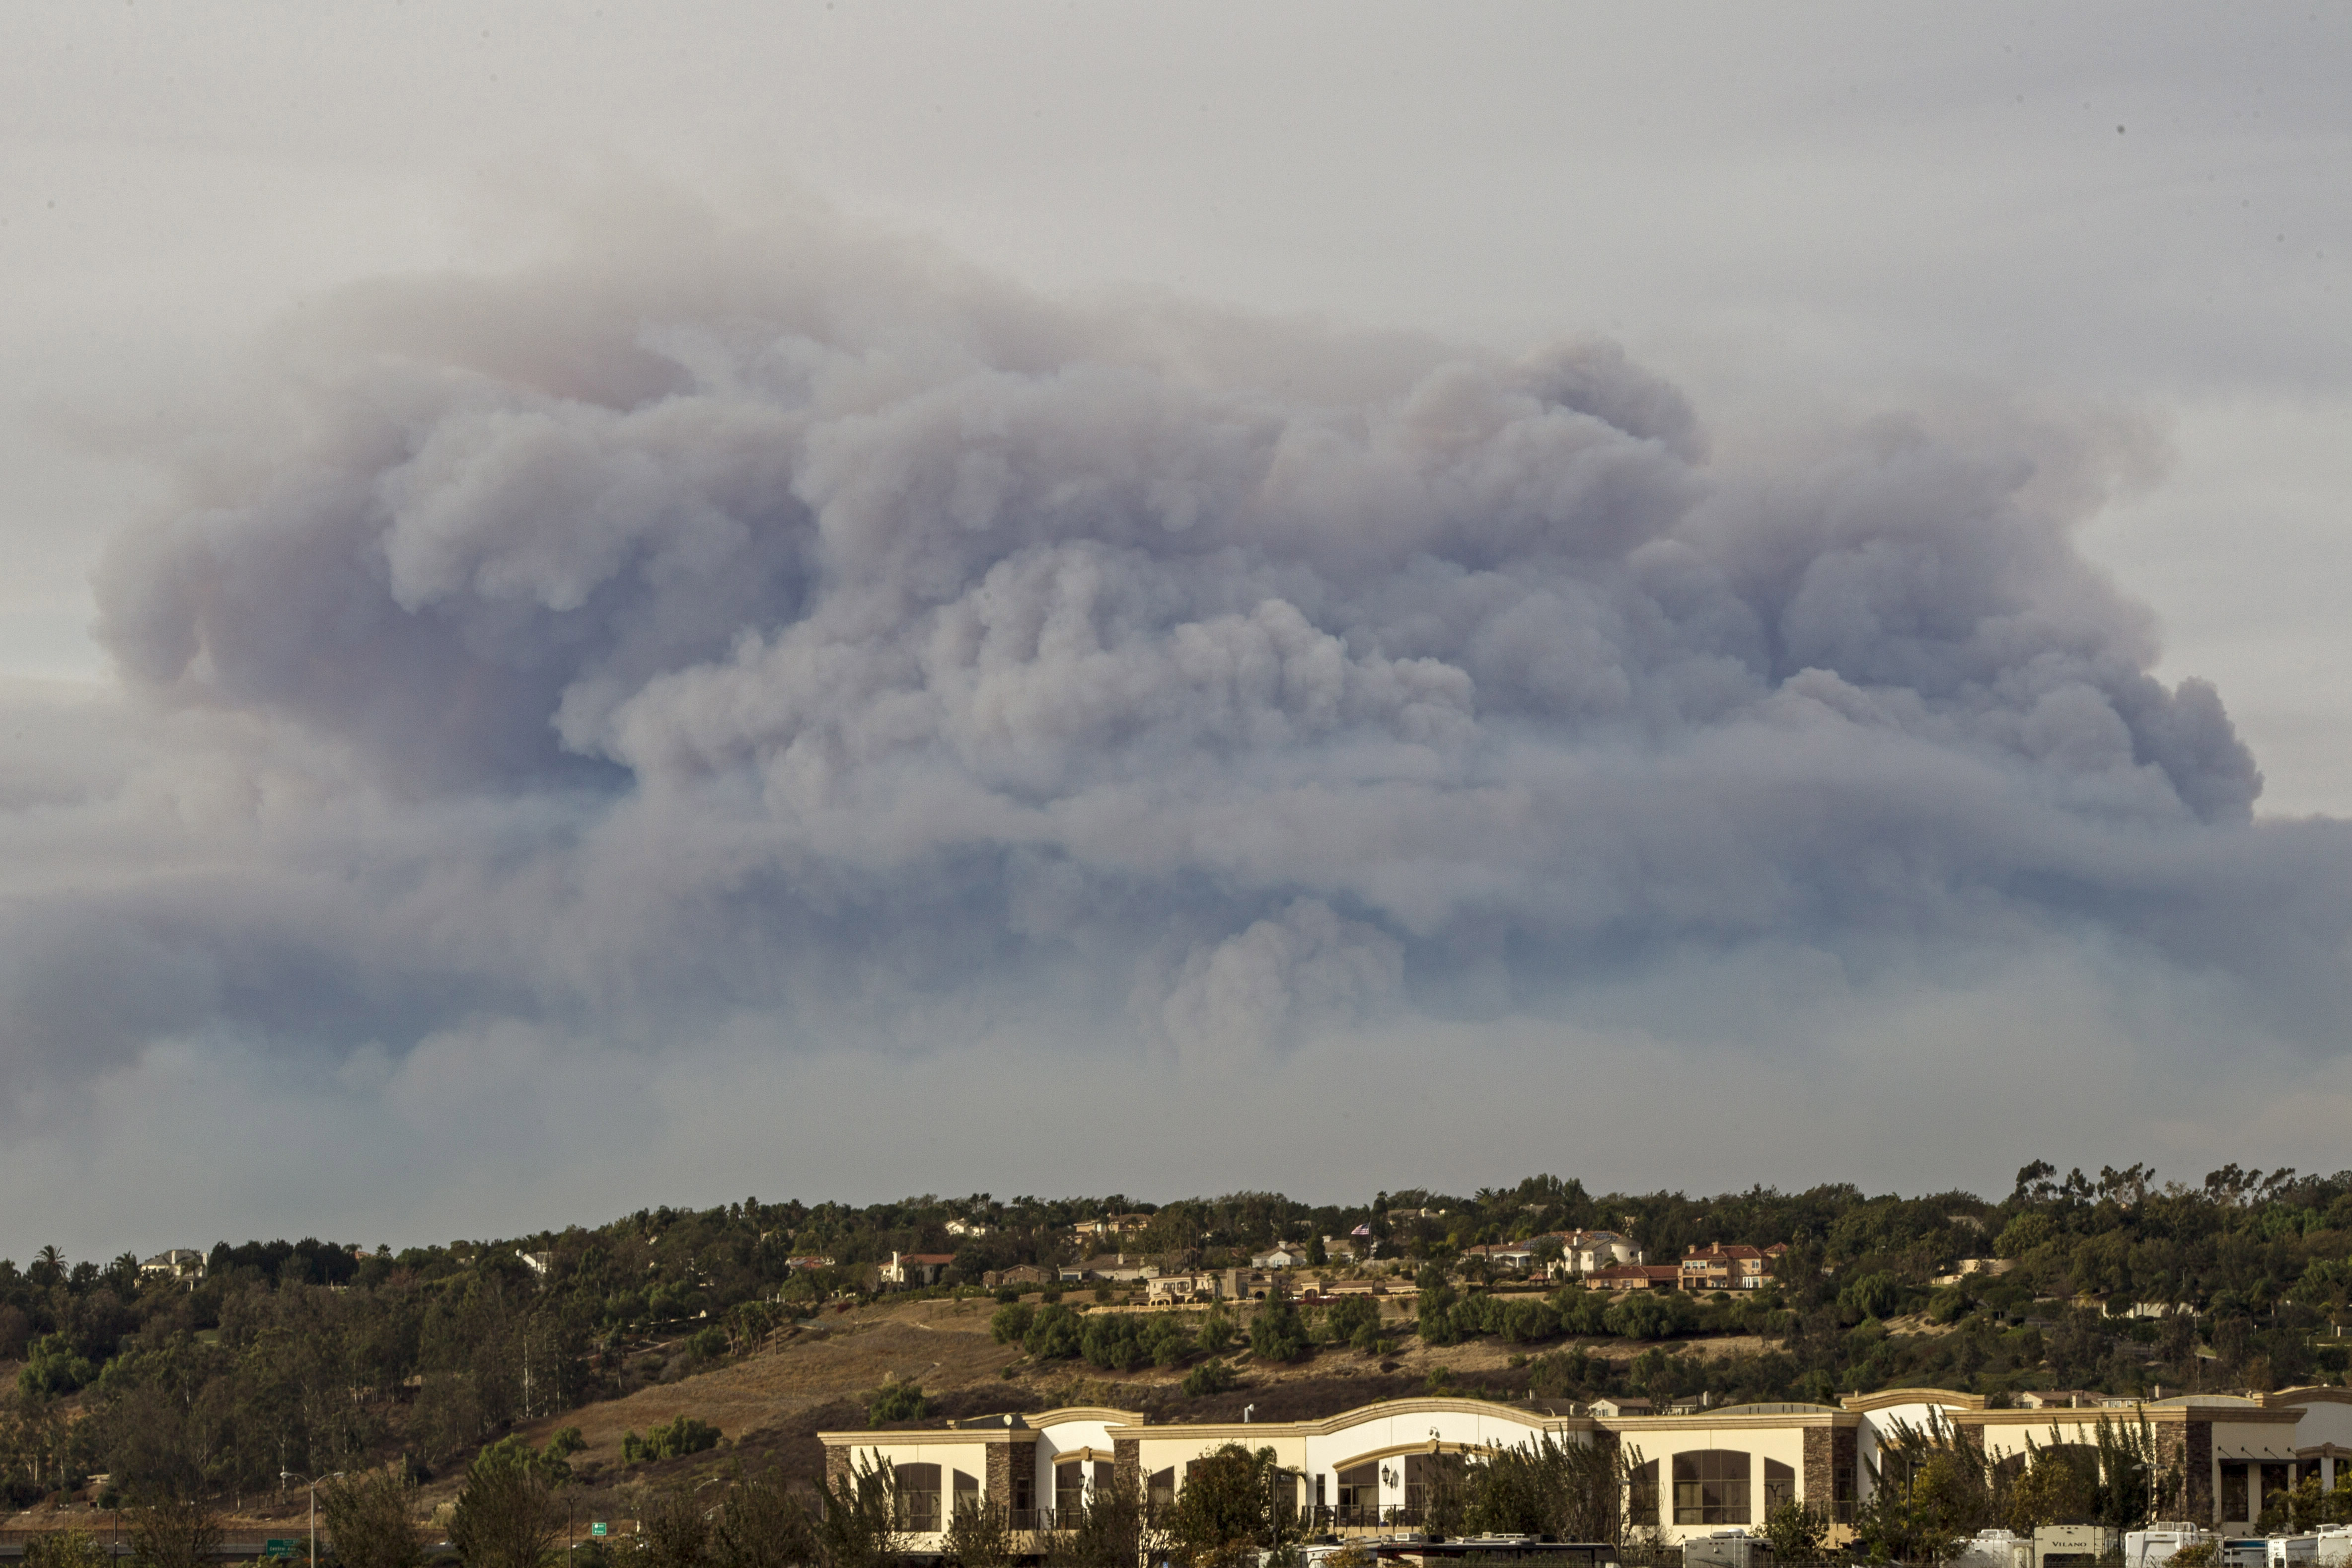 Calif. Utility Equipment Investigated for Connection to Fires